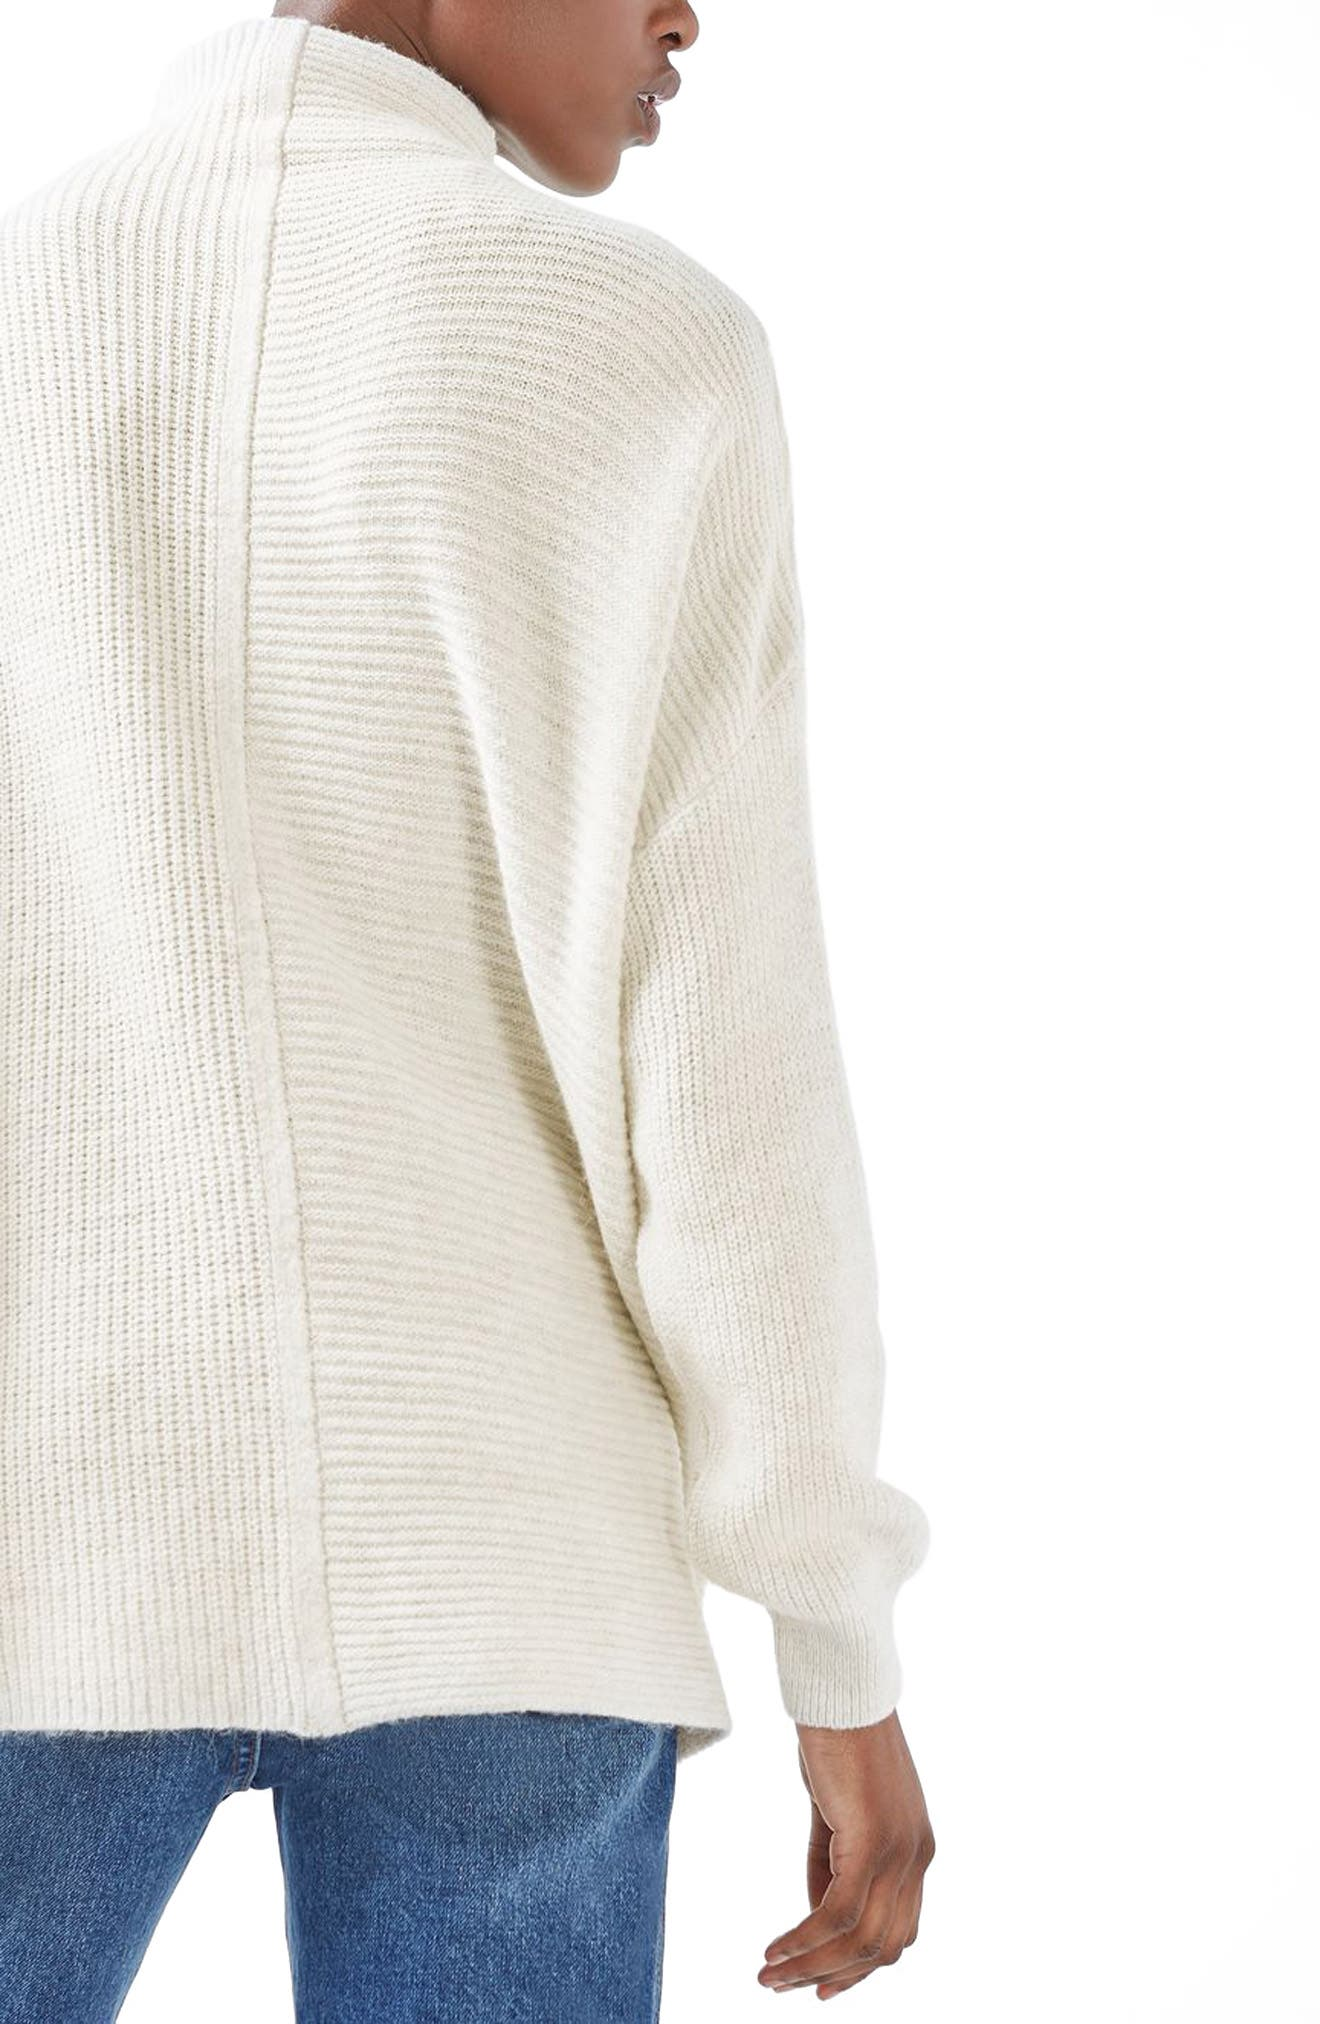 Alternate Image 3  - Topshop Funnel Neck Mixed Knit Sweater (Regular & Petite)